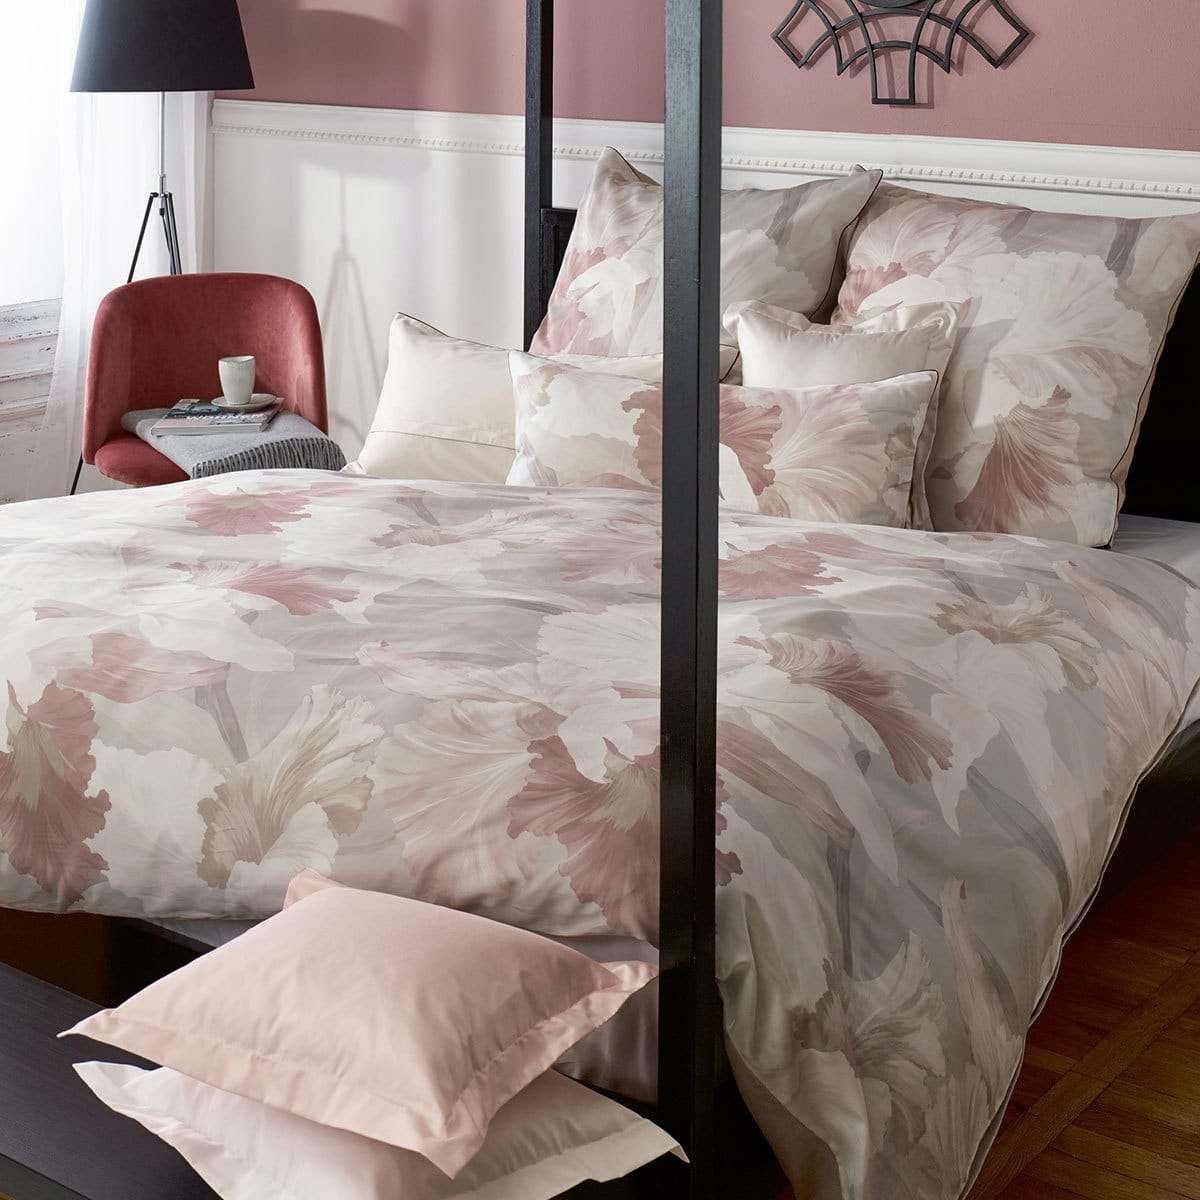 curt bauer mako satin wendebettw sche marseille pastell g nstig online kaufen bei bettwaren shop. Black Bedroom Furniture Sets. Home Design Ideas